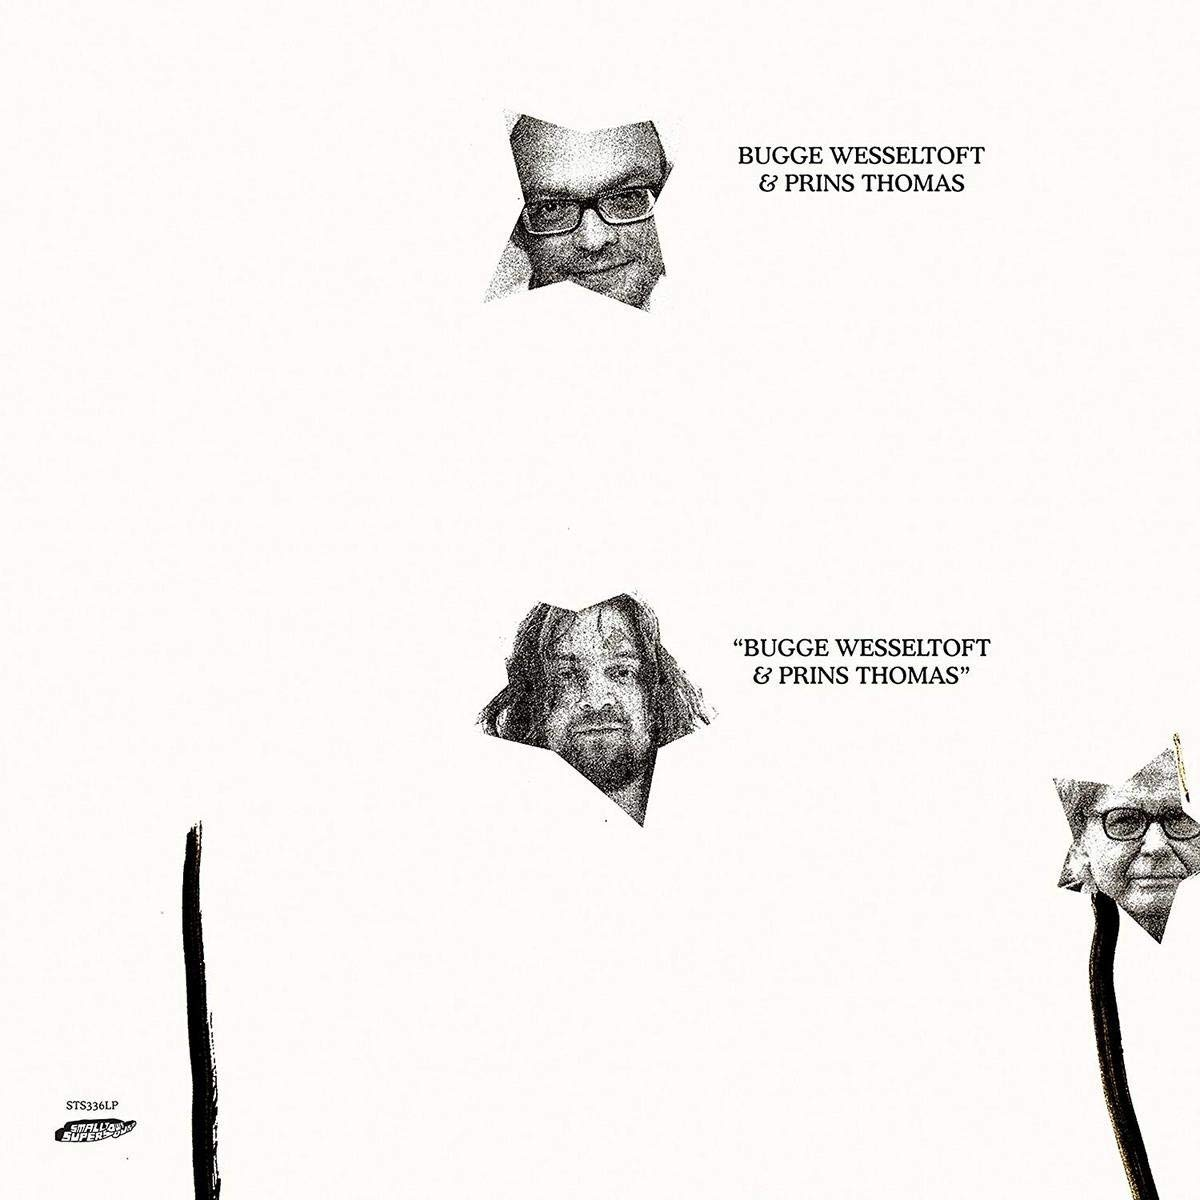 BUGGE WESSELTOFT - Bugge Wesseltoft & Prins Thomas cover